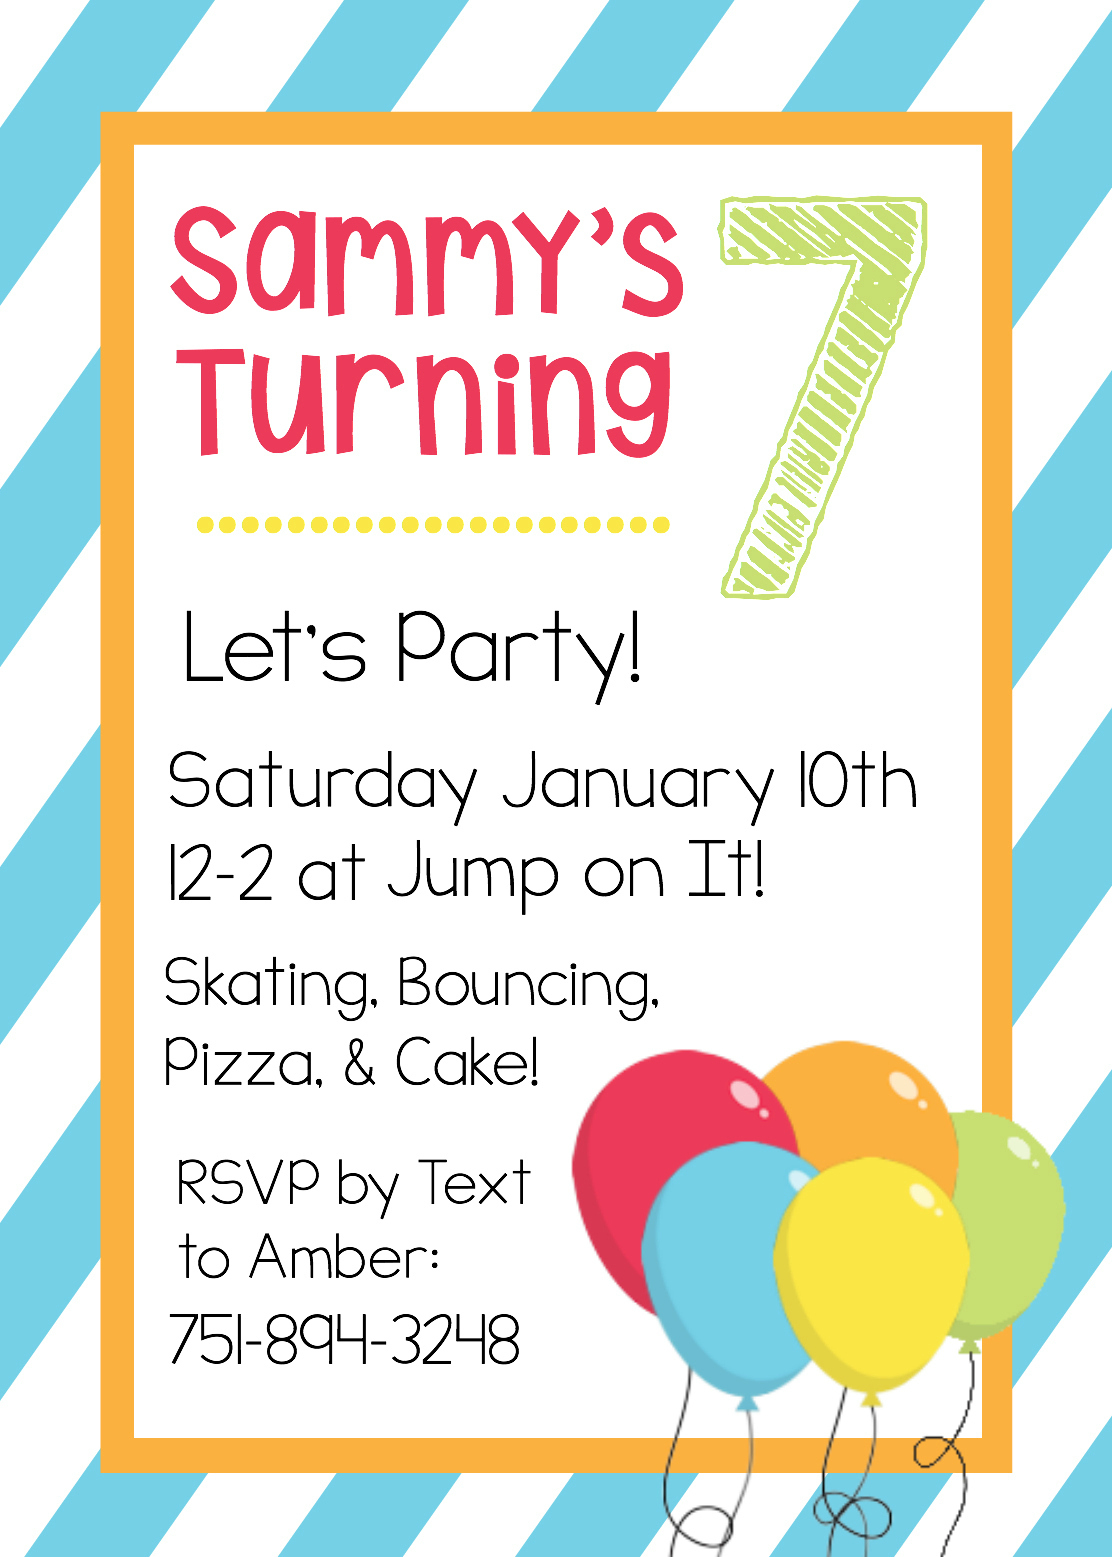 Free Printable Birthday Invitation Templates - Make Your Own Birthday Party Invitations Free Printable